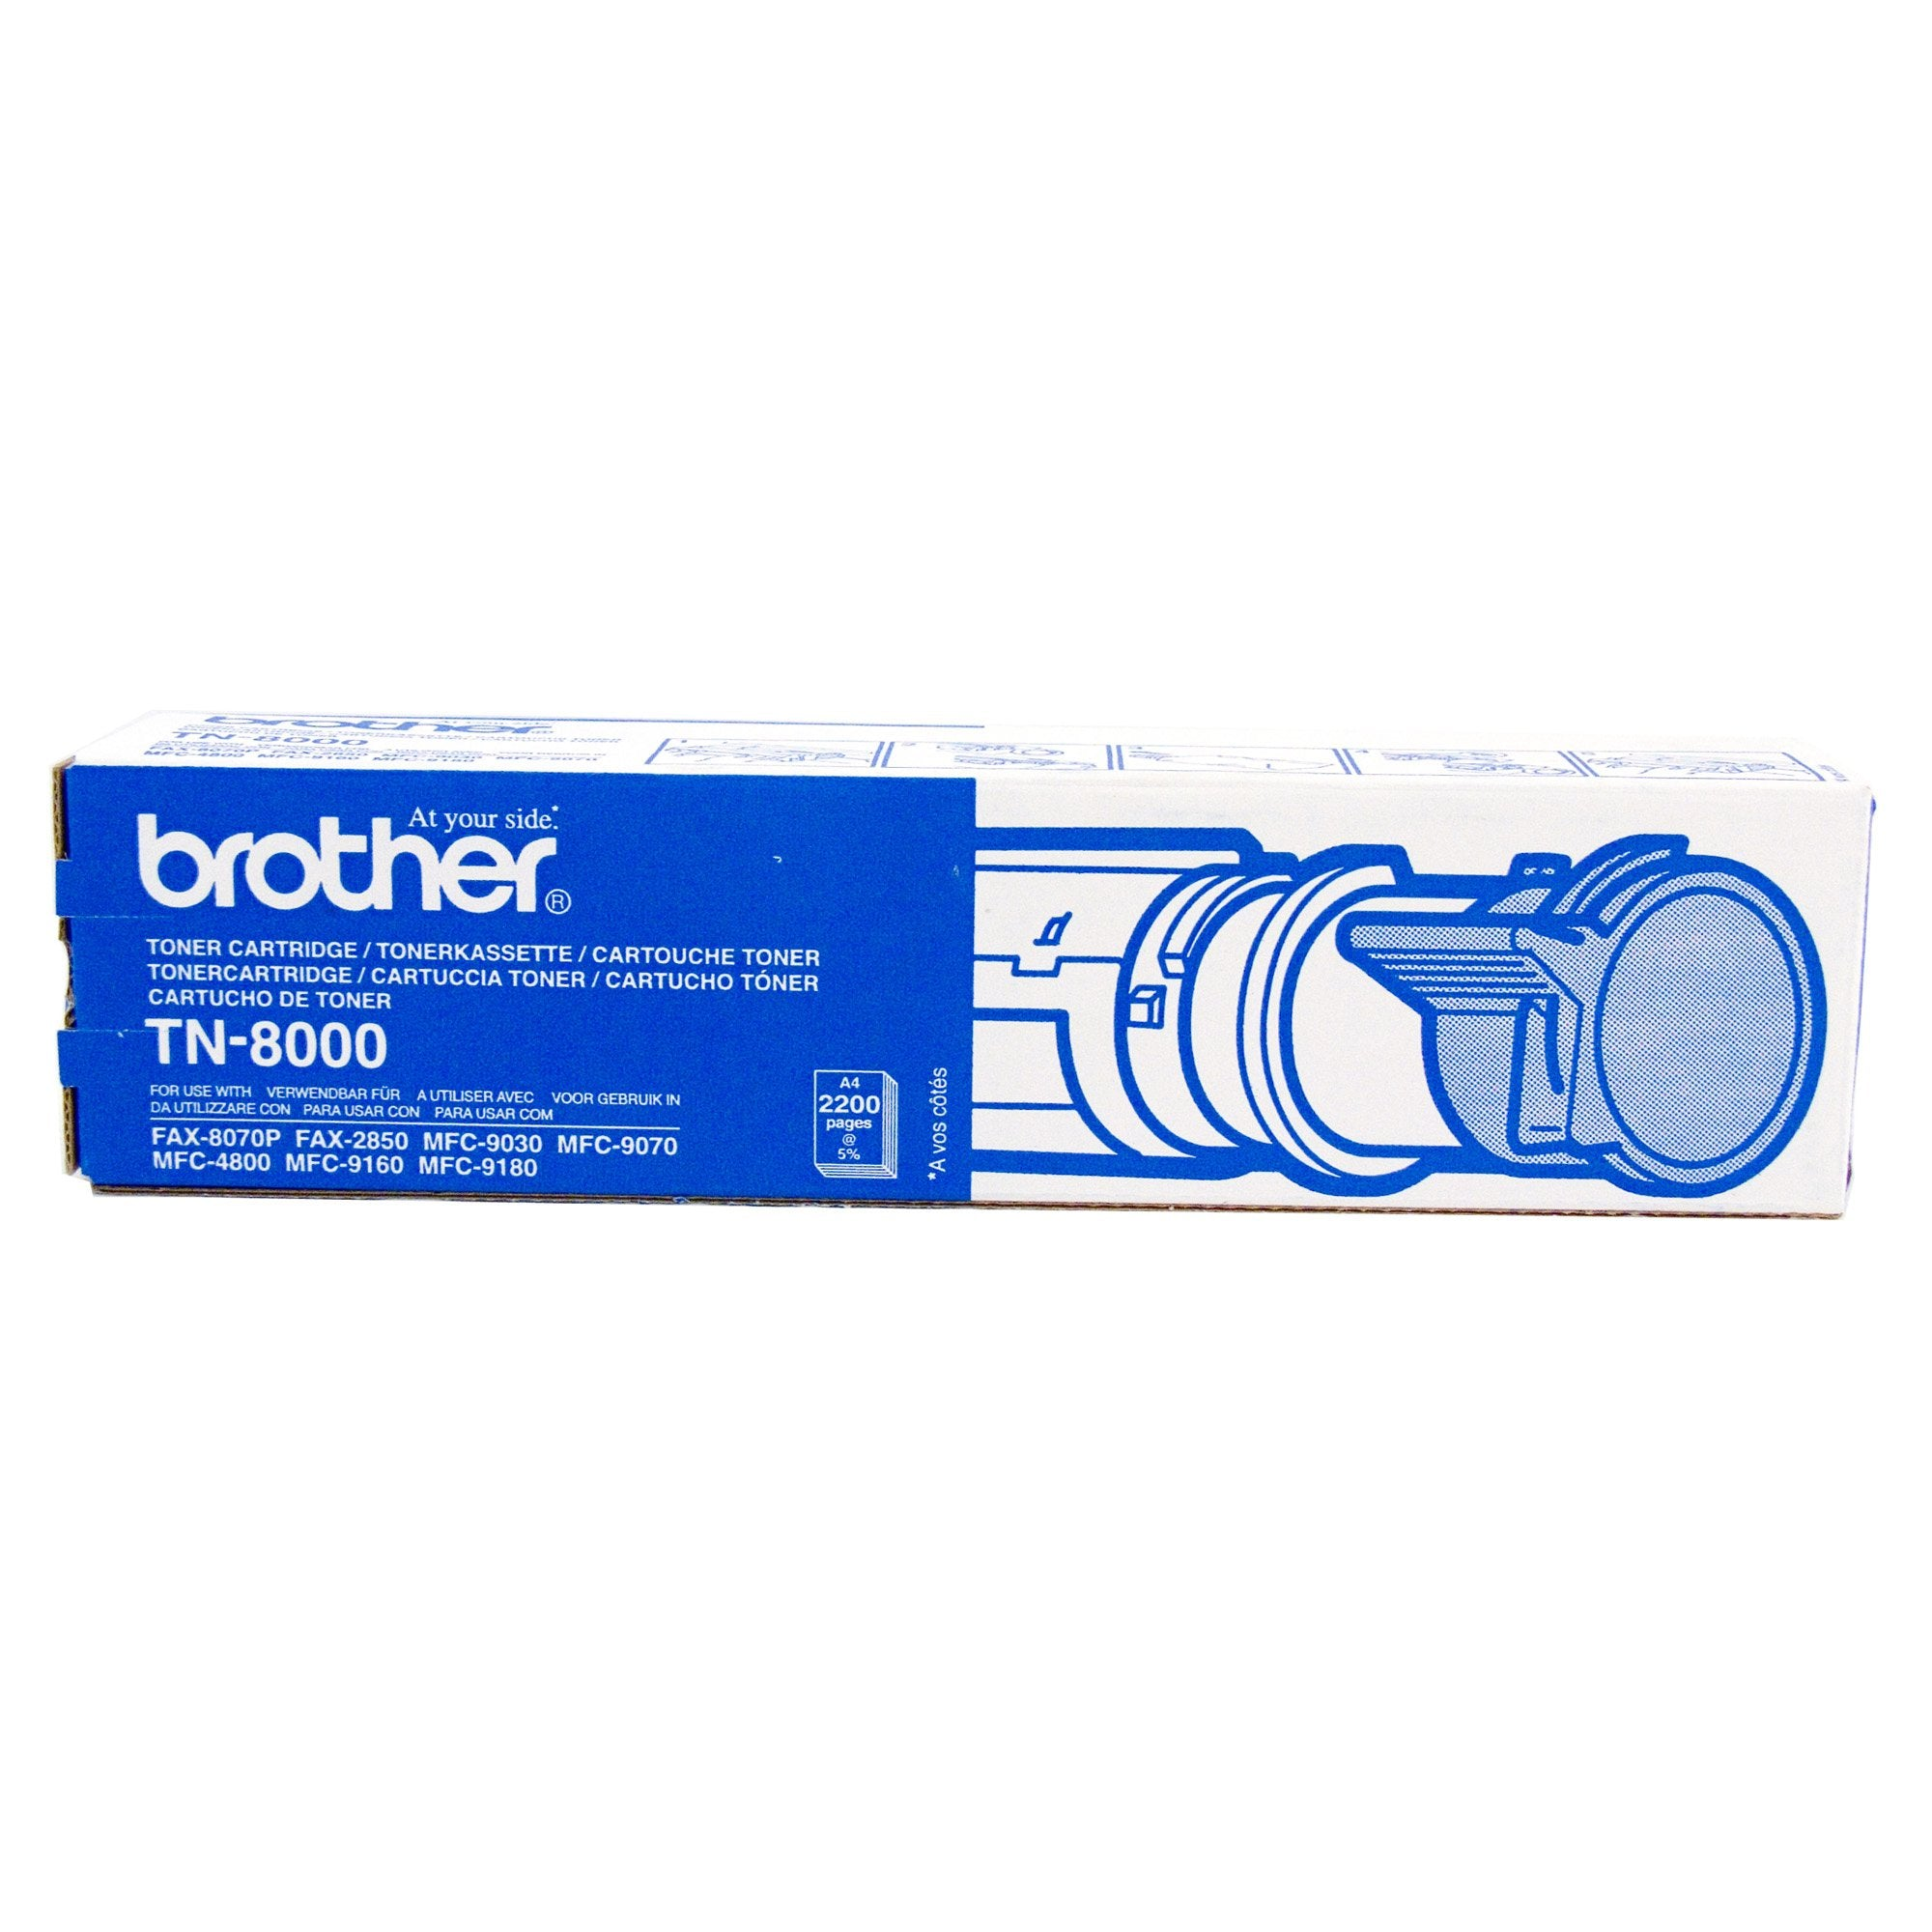 Brother TN-8000 Black Toner Cartridge